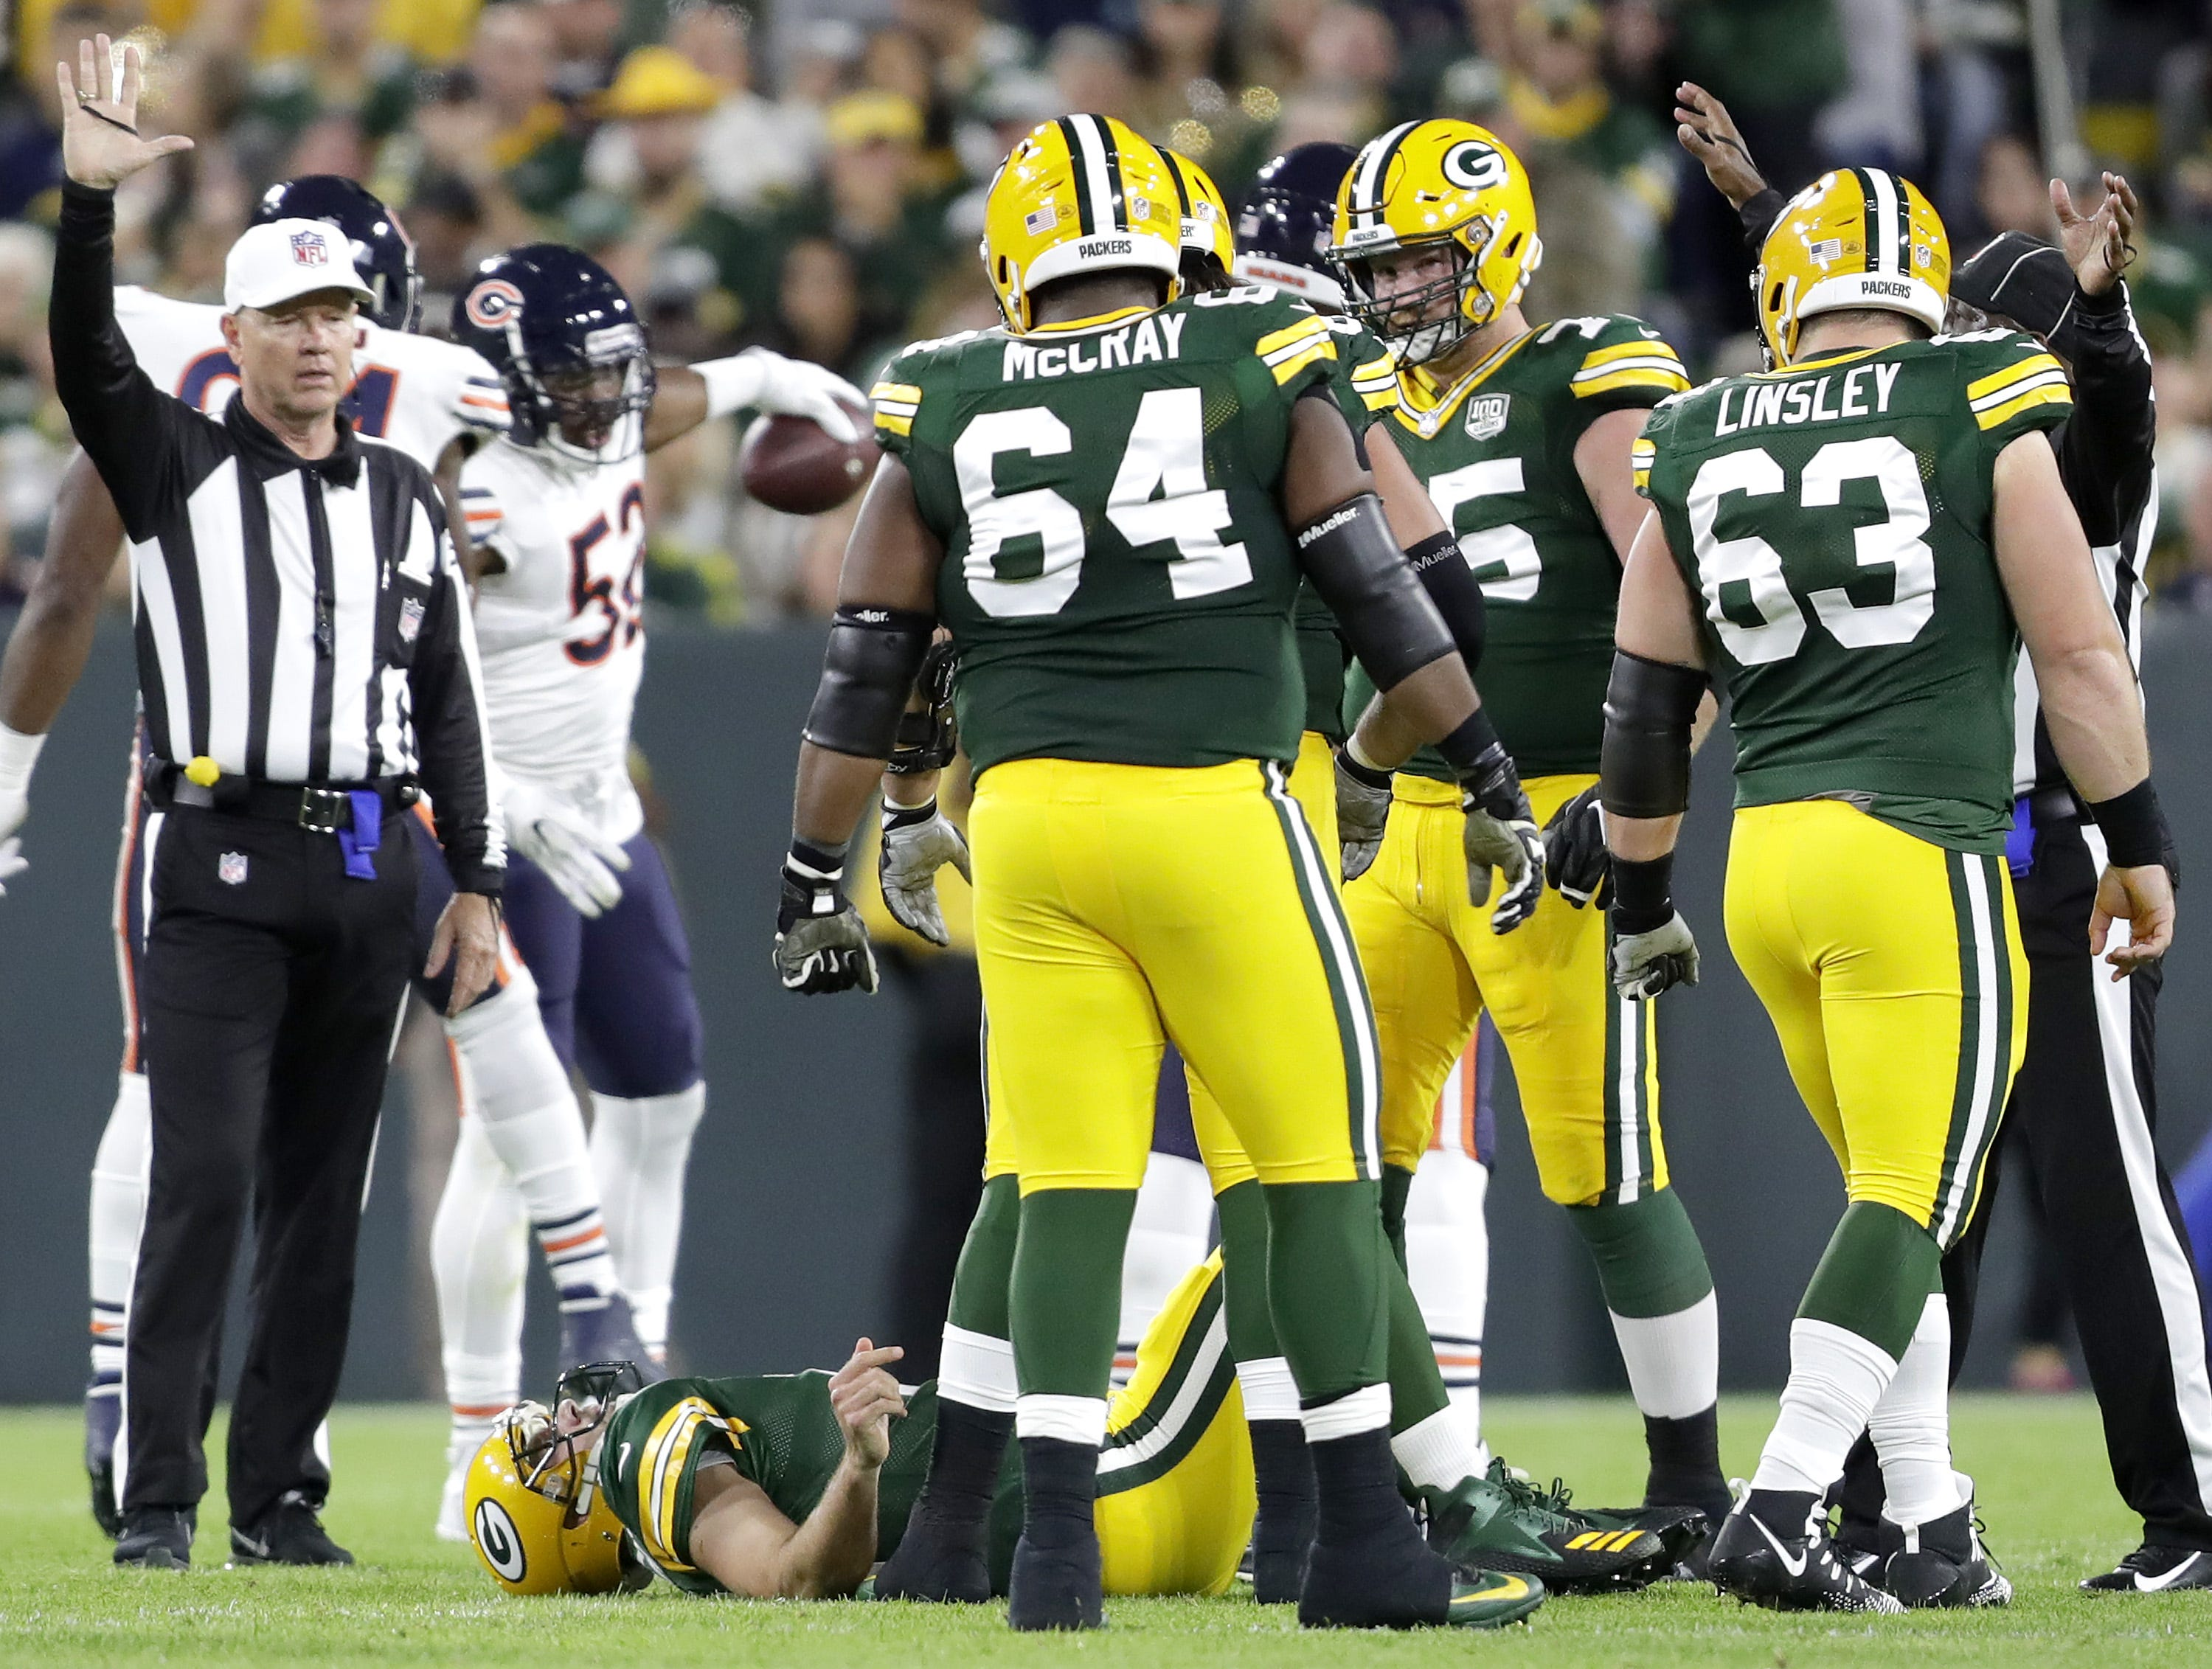 Green Bay Packers' Aaron Rodgers is injured in the second quarter against the Chicago Bears in the season opener on Sunday, September 9, 2018, at Lambeau Field in Green Bay, Wis.